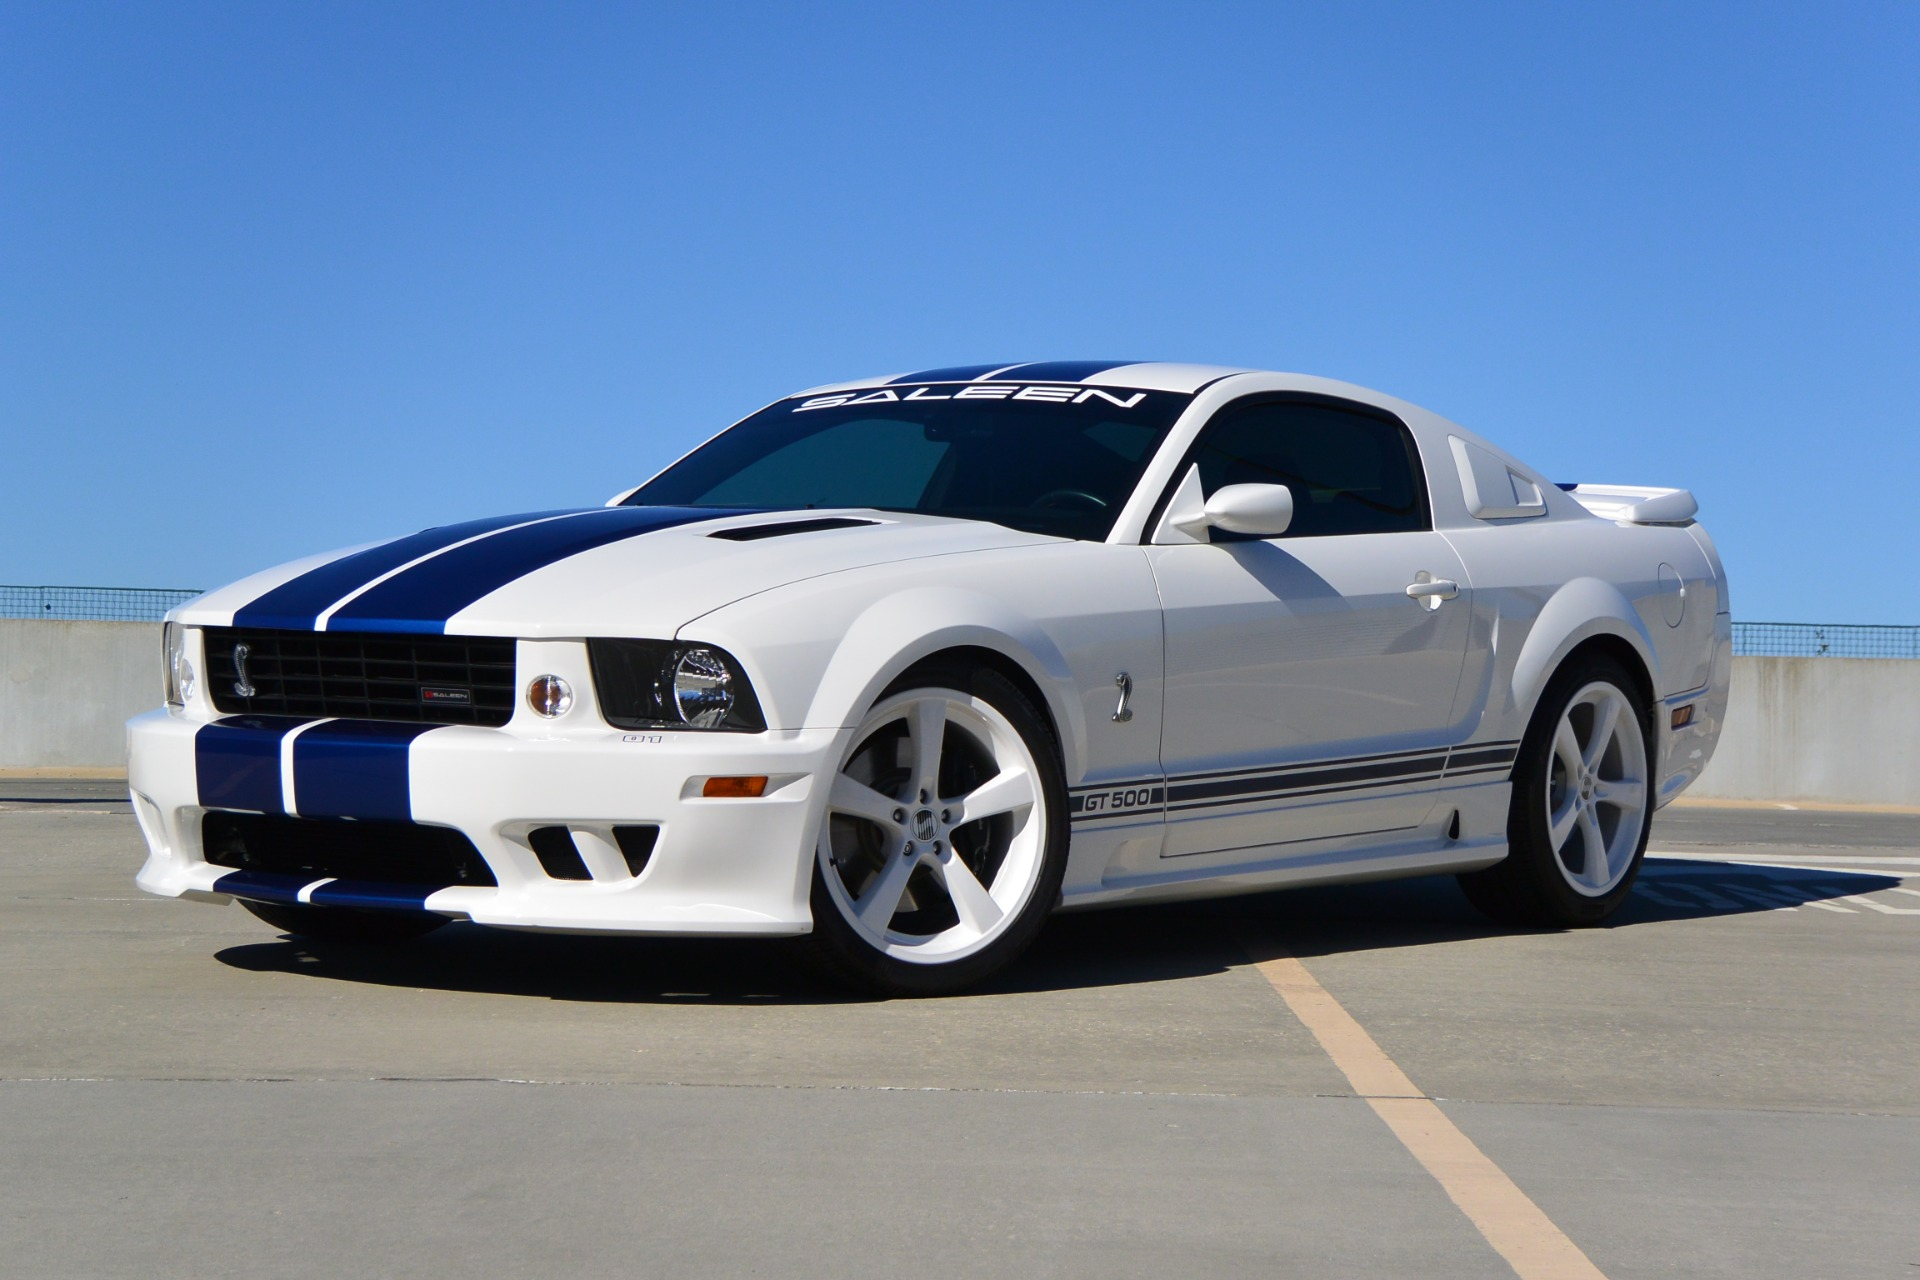 Used-2007-Ford-Mustang-Shelby-GT500-**-The-Lucky-1--Unit---01/01-**-for-sale-Jackson-MS